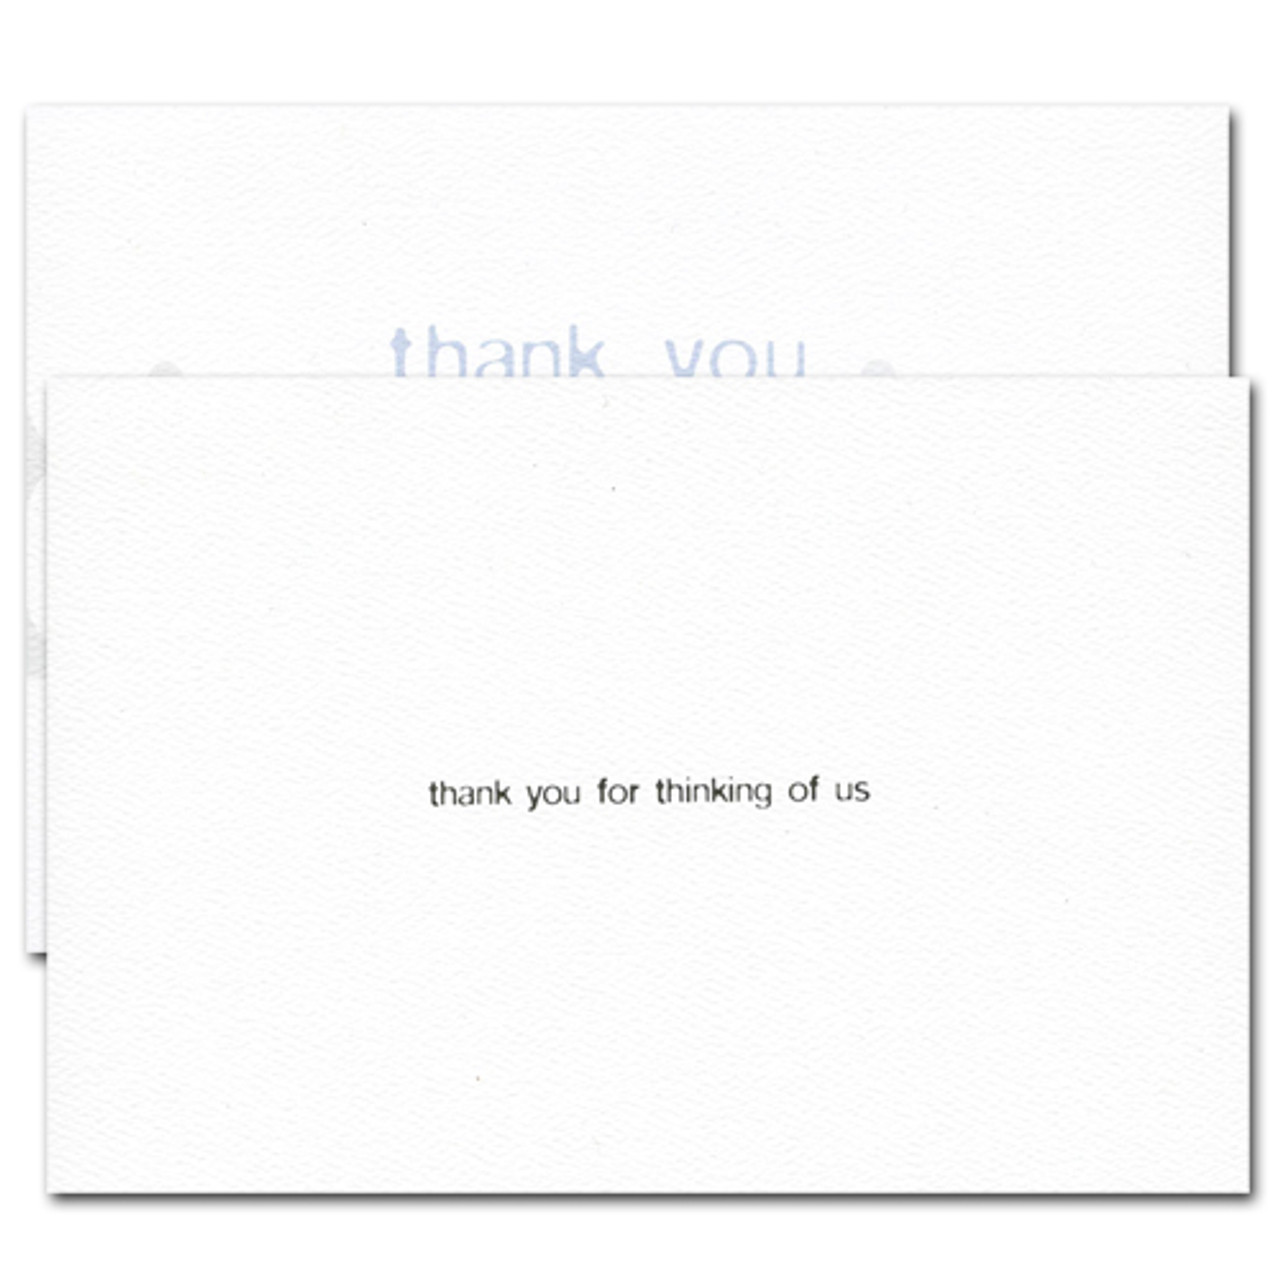 Triple Referral Thank You Card. Inside reads: thank you for thinking of us